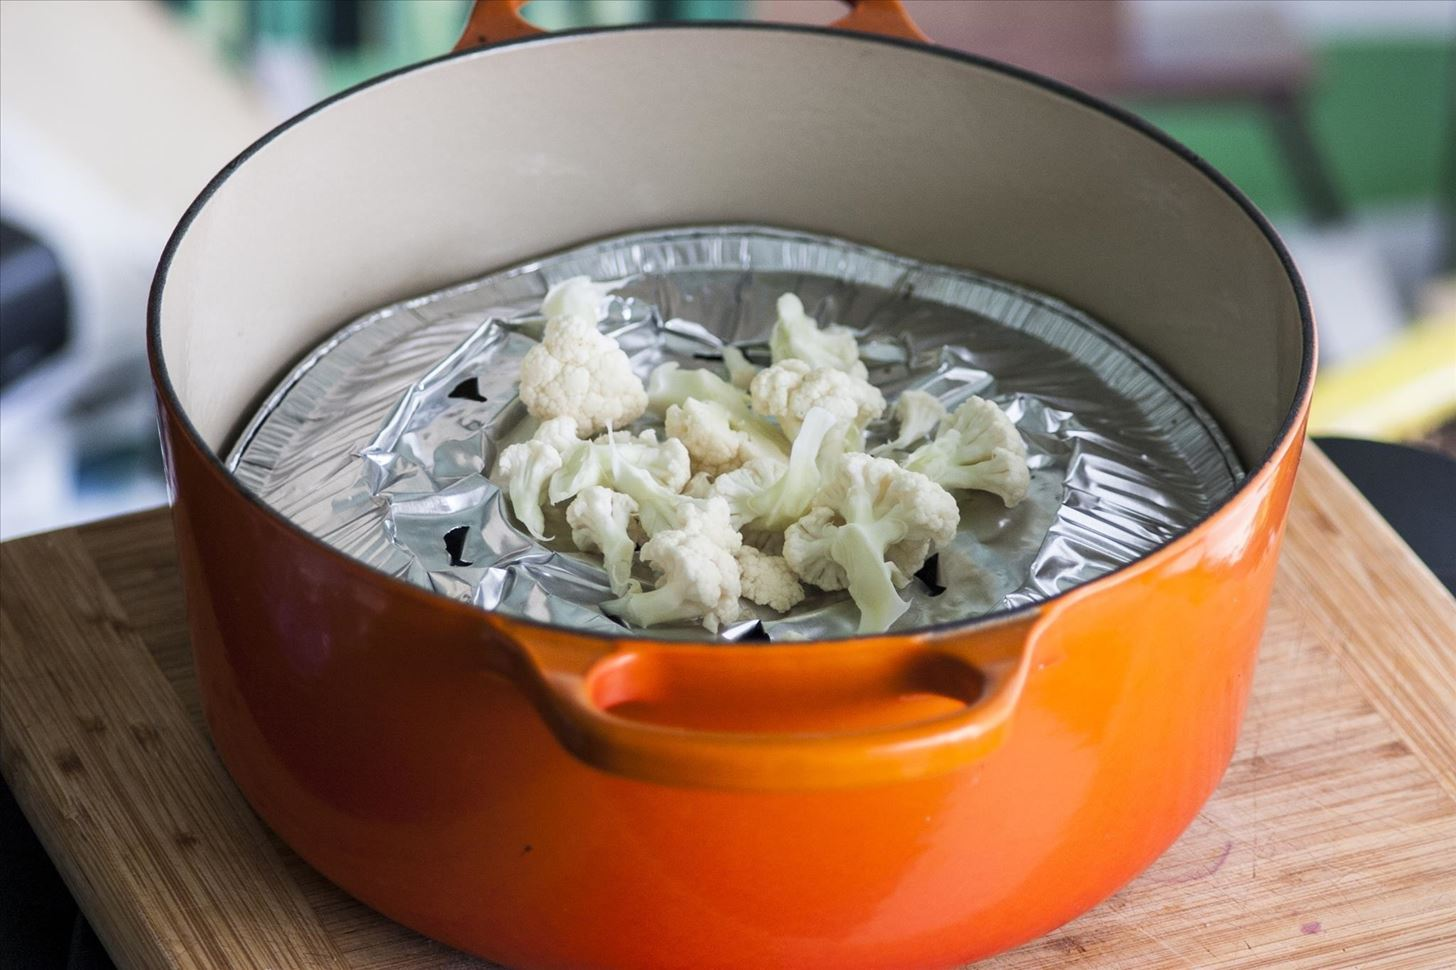 How to Steam Food Without a Steamer Basket